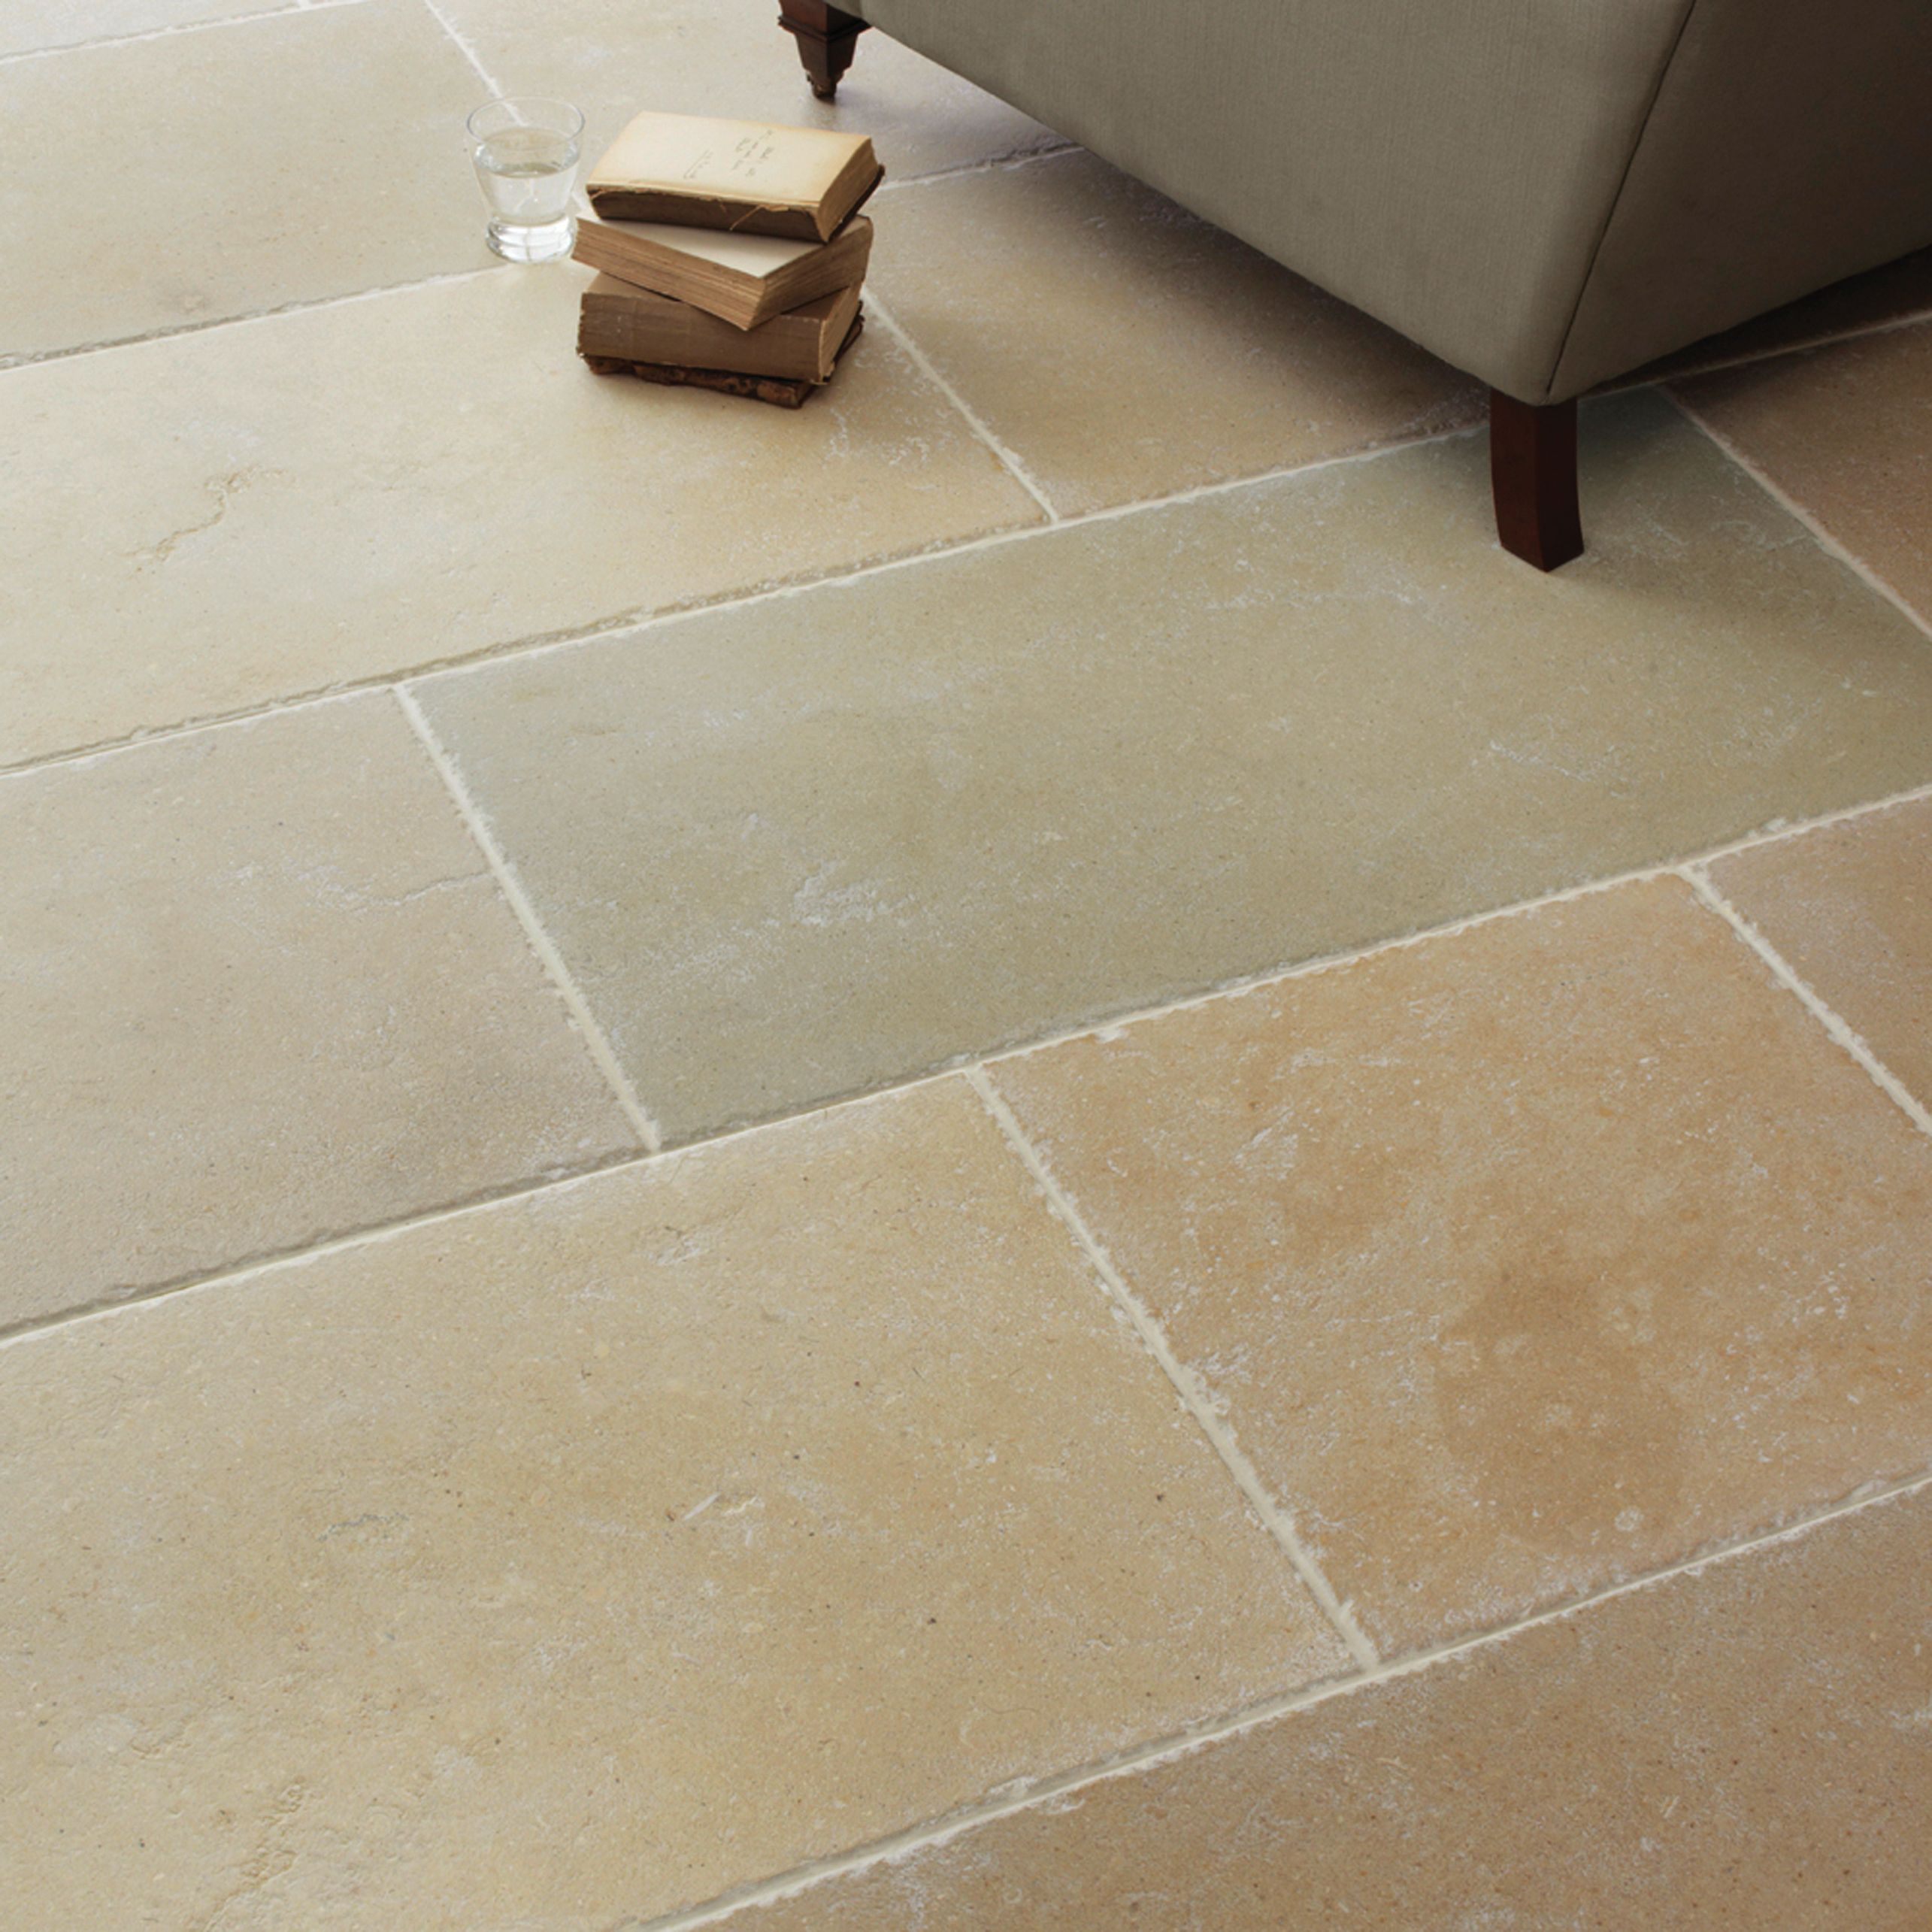 French vanilla french vanilla limestone tile pinterest part of the westbury flooring range the bourgogne vintaged is an exquisite limestone flooring varying in tone to give a vintage feel and lots of character dailygadgetfo Image collections